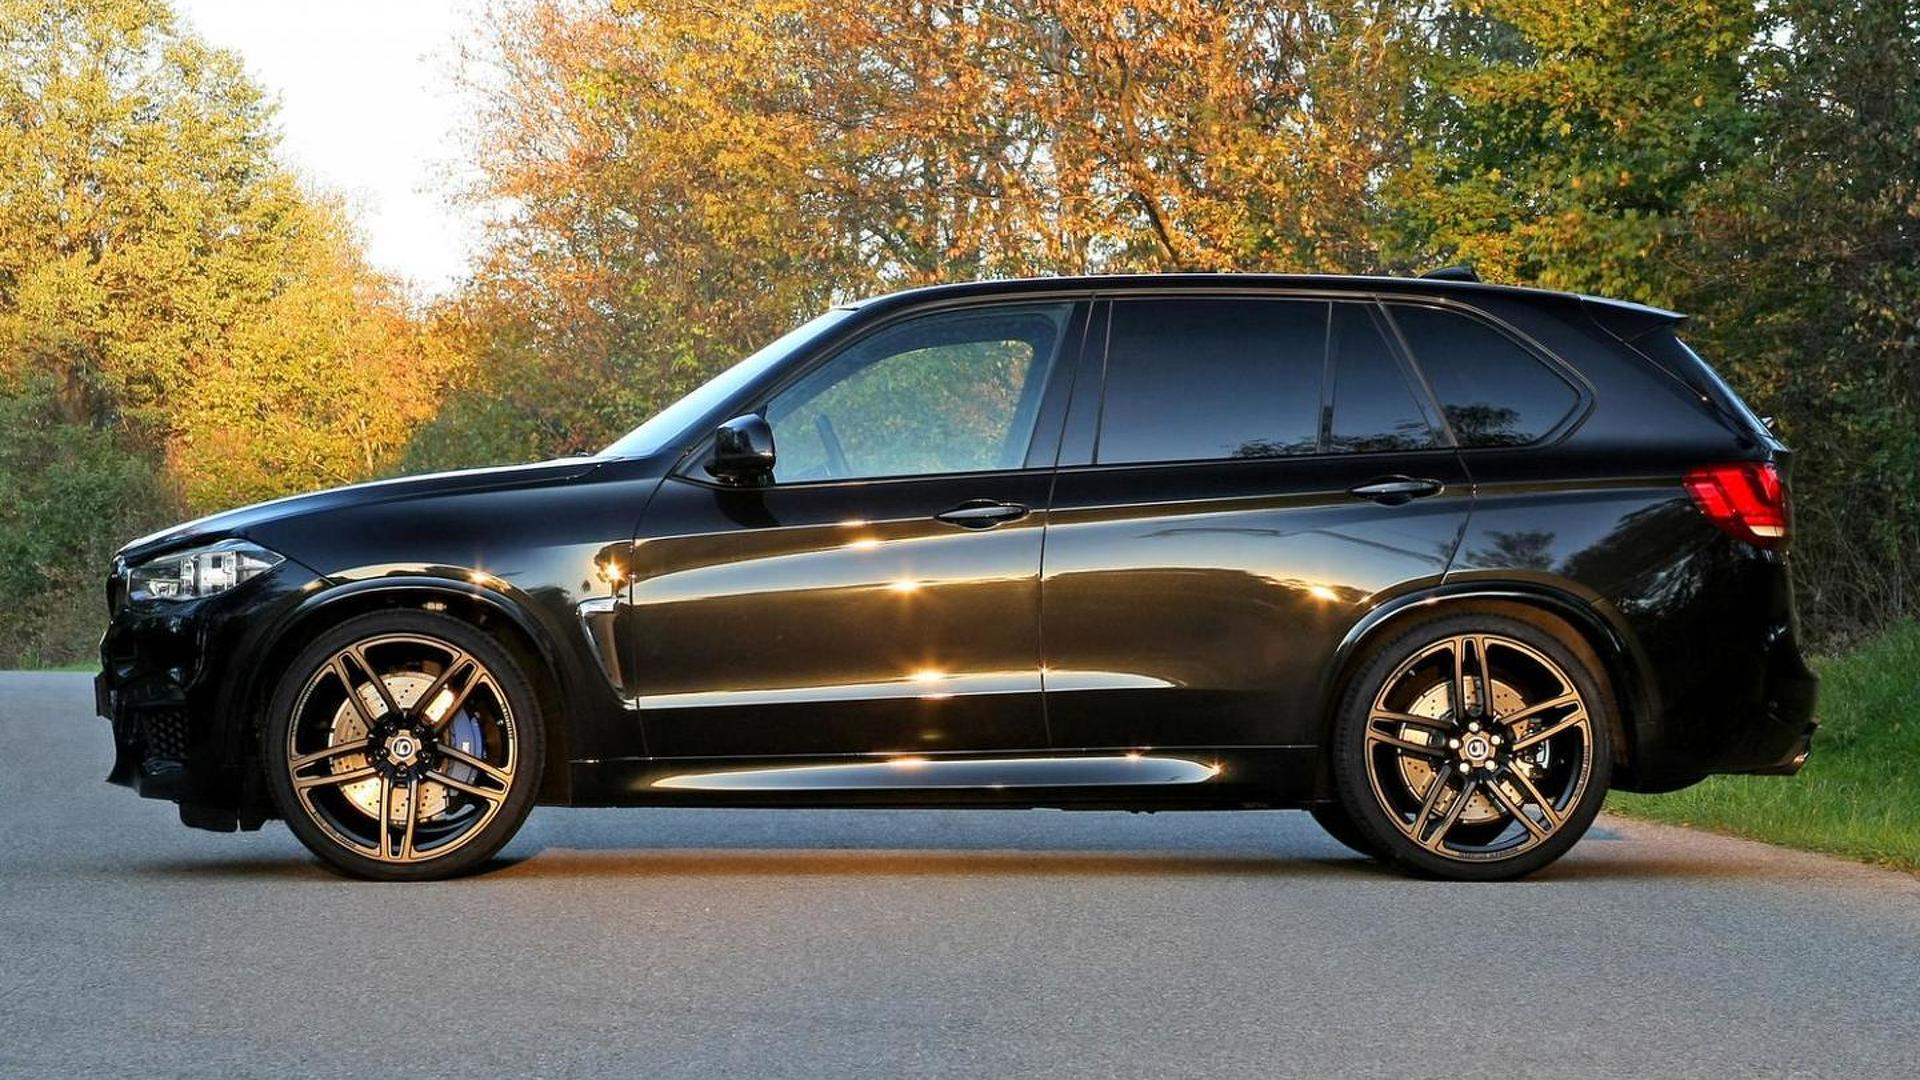 Latest BMW X5 M dialed to 700 PS by G-Power